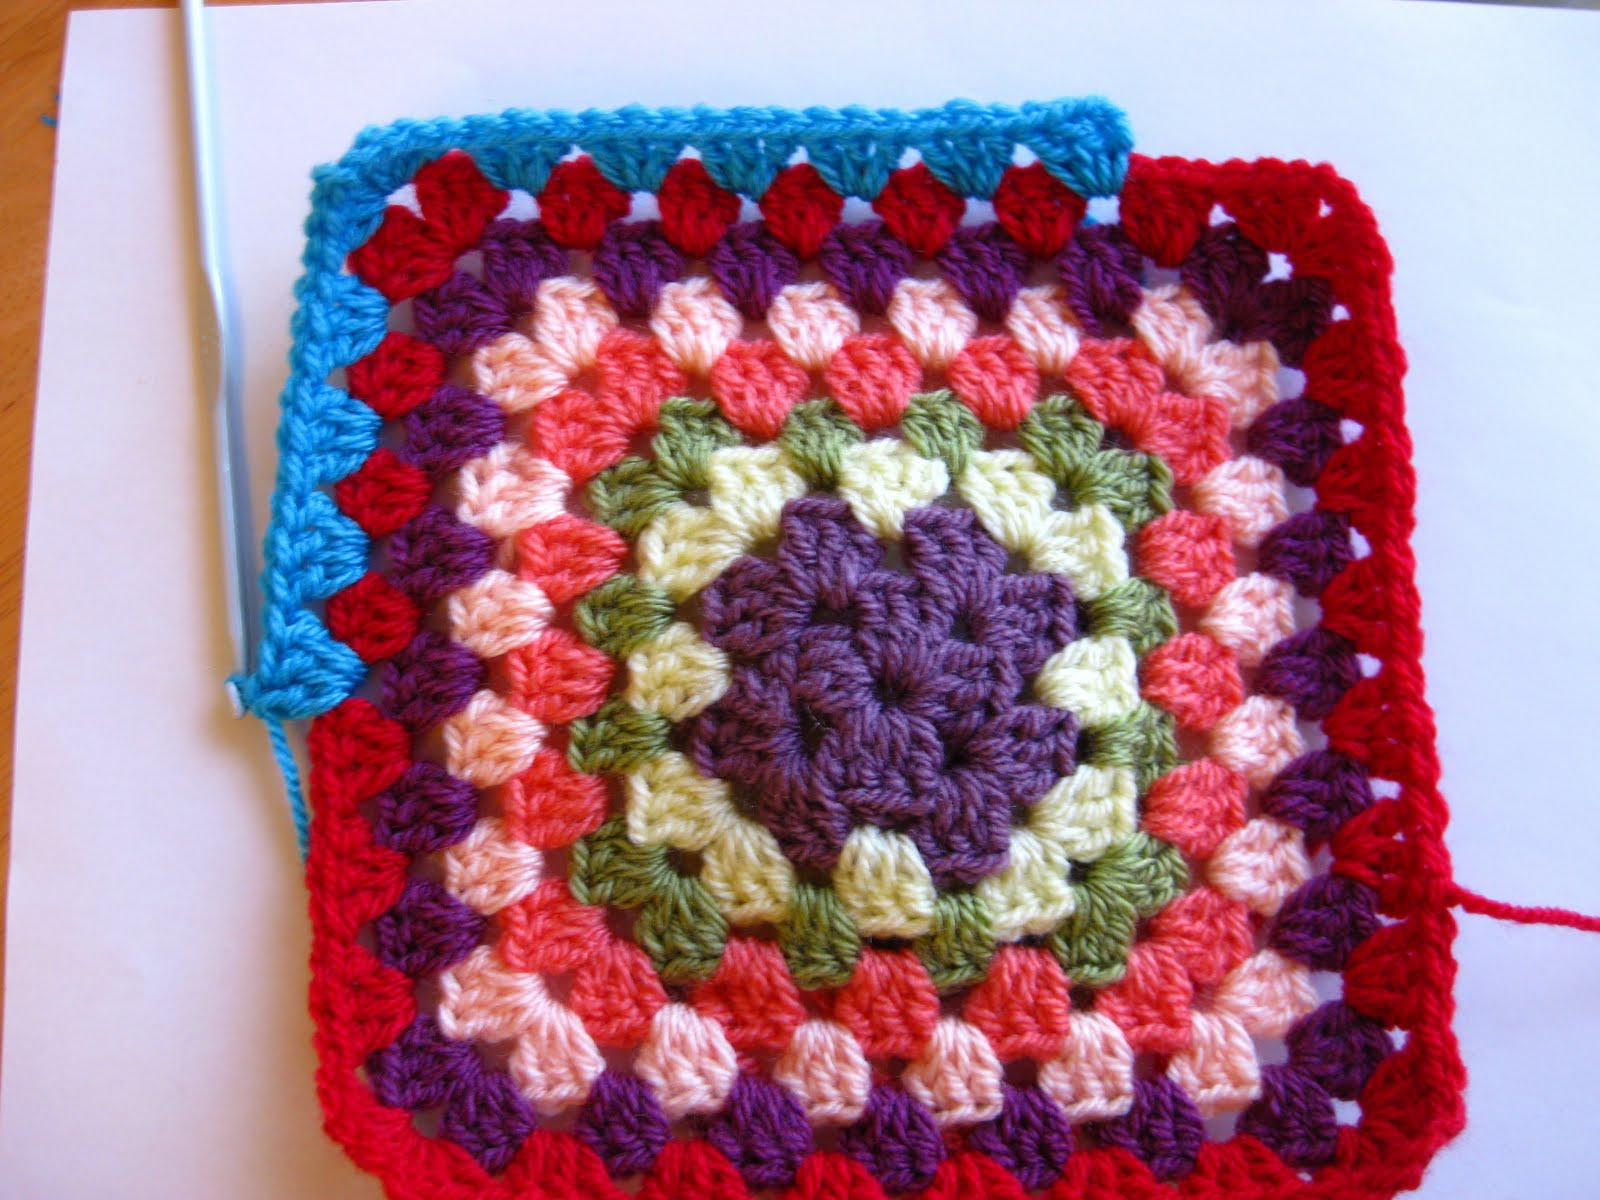 Crochet Granny Square Pattern : Bunny Mummy: How to crochet a Granny Square